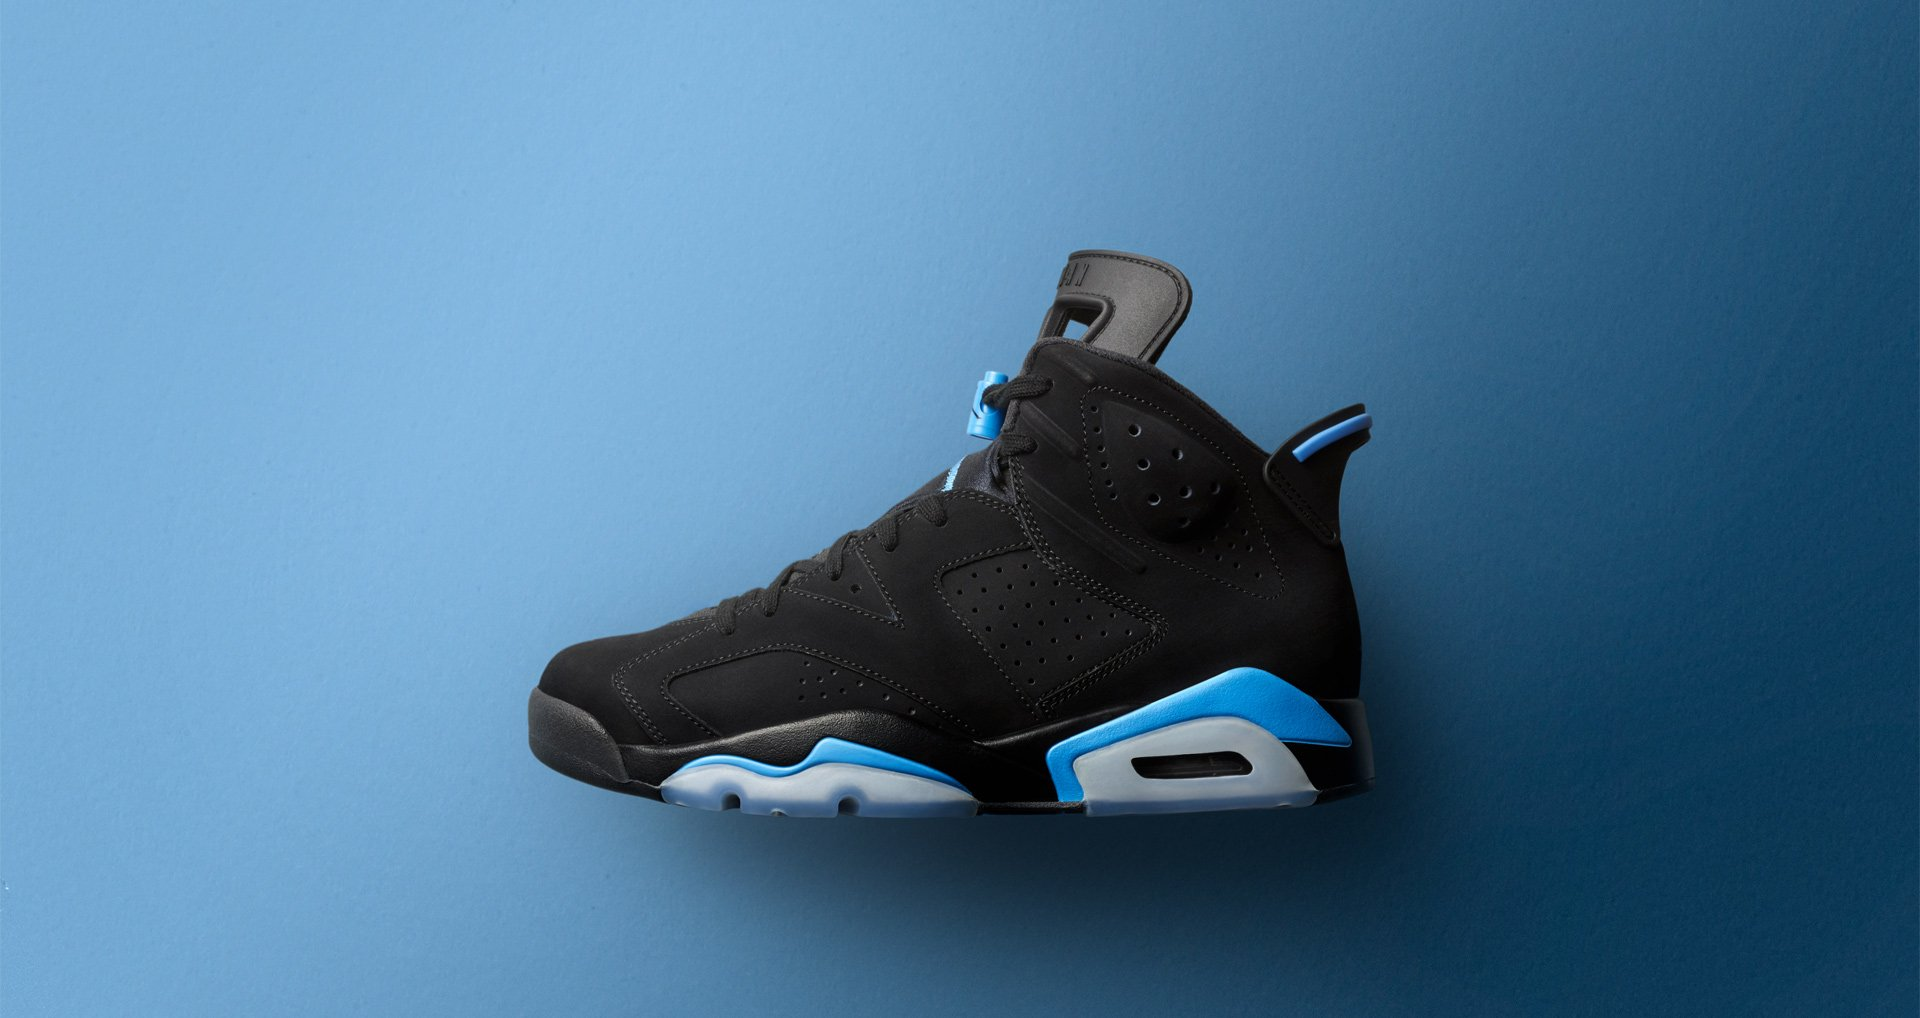 nike-air-jordan-6-black-university-blue-384664-006-release-20171202